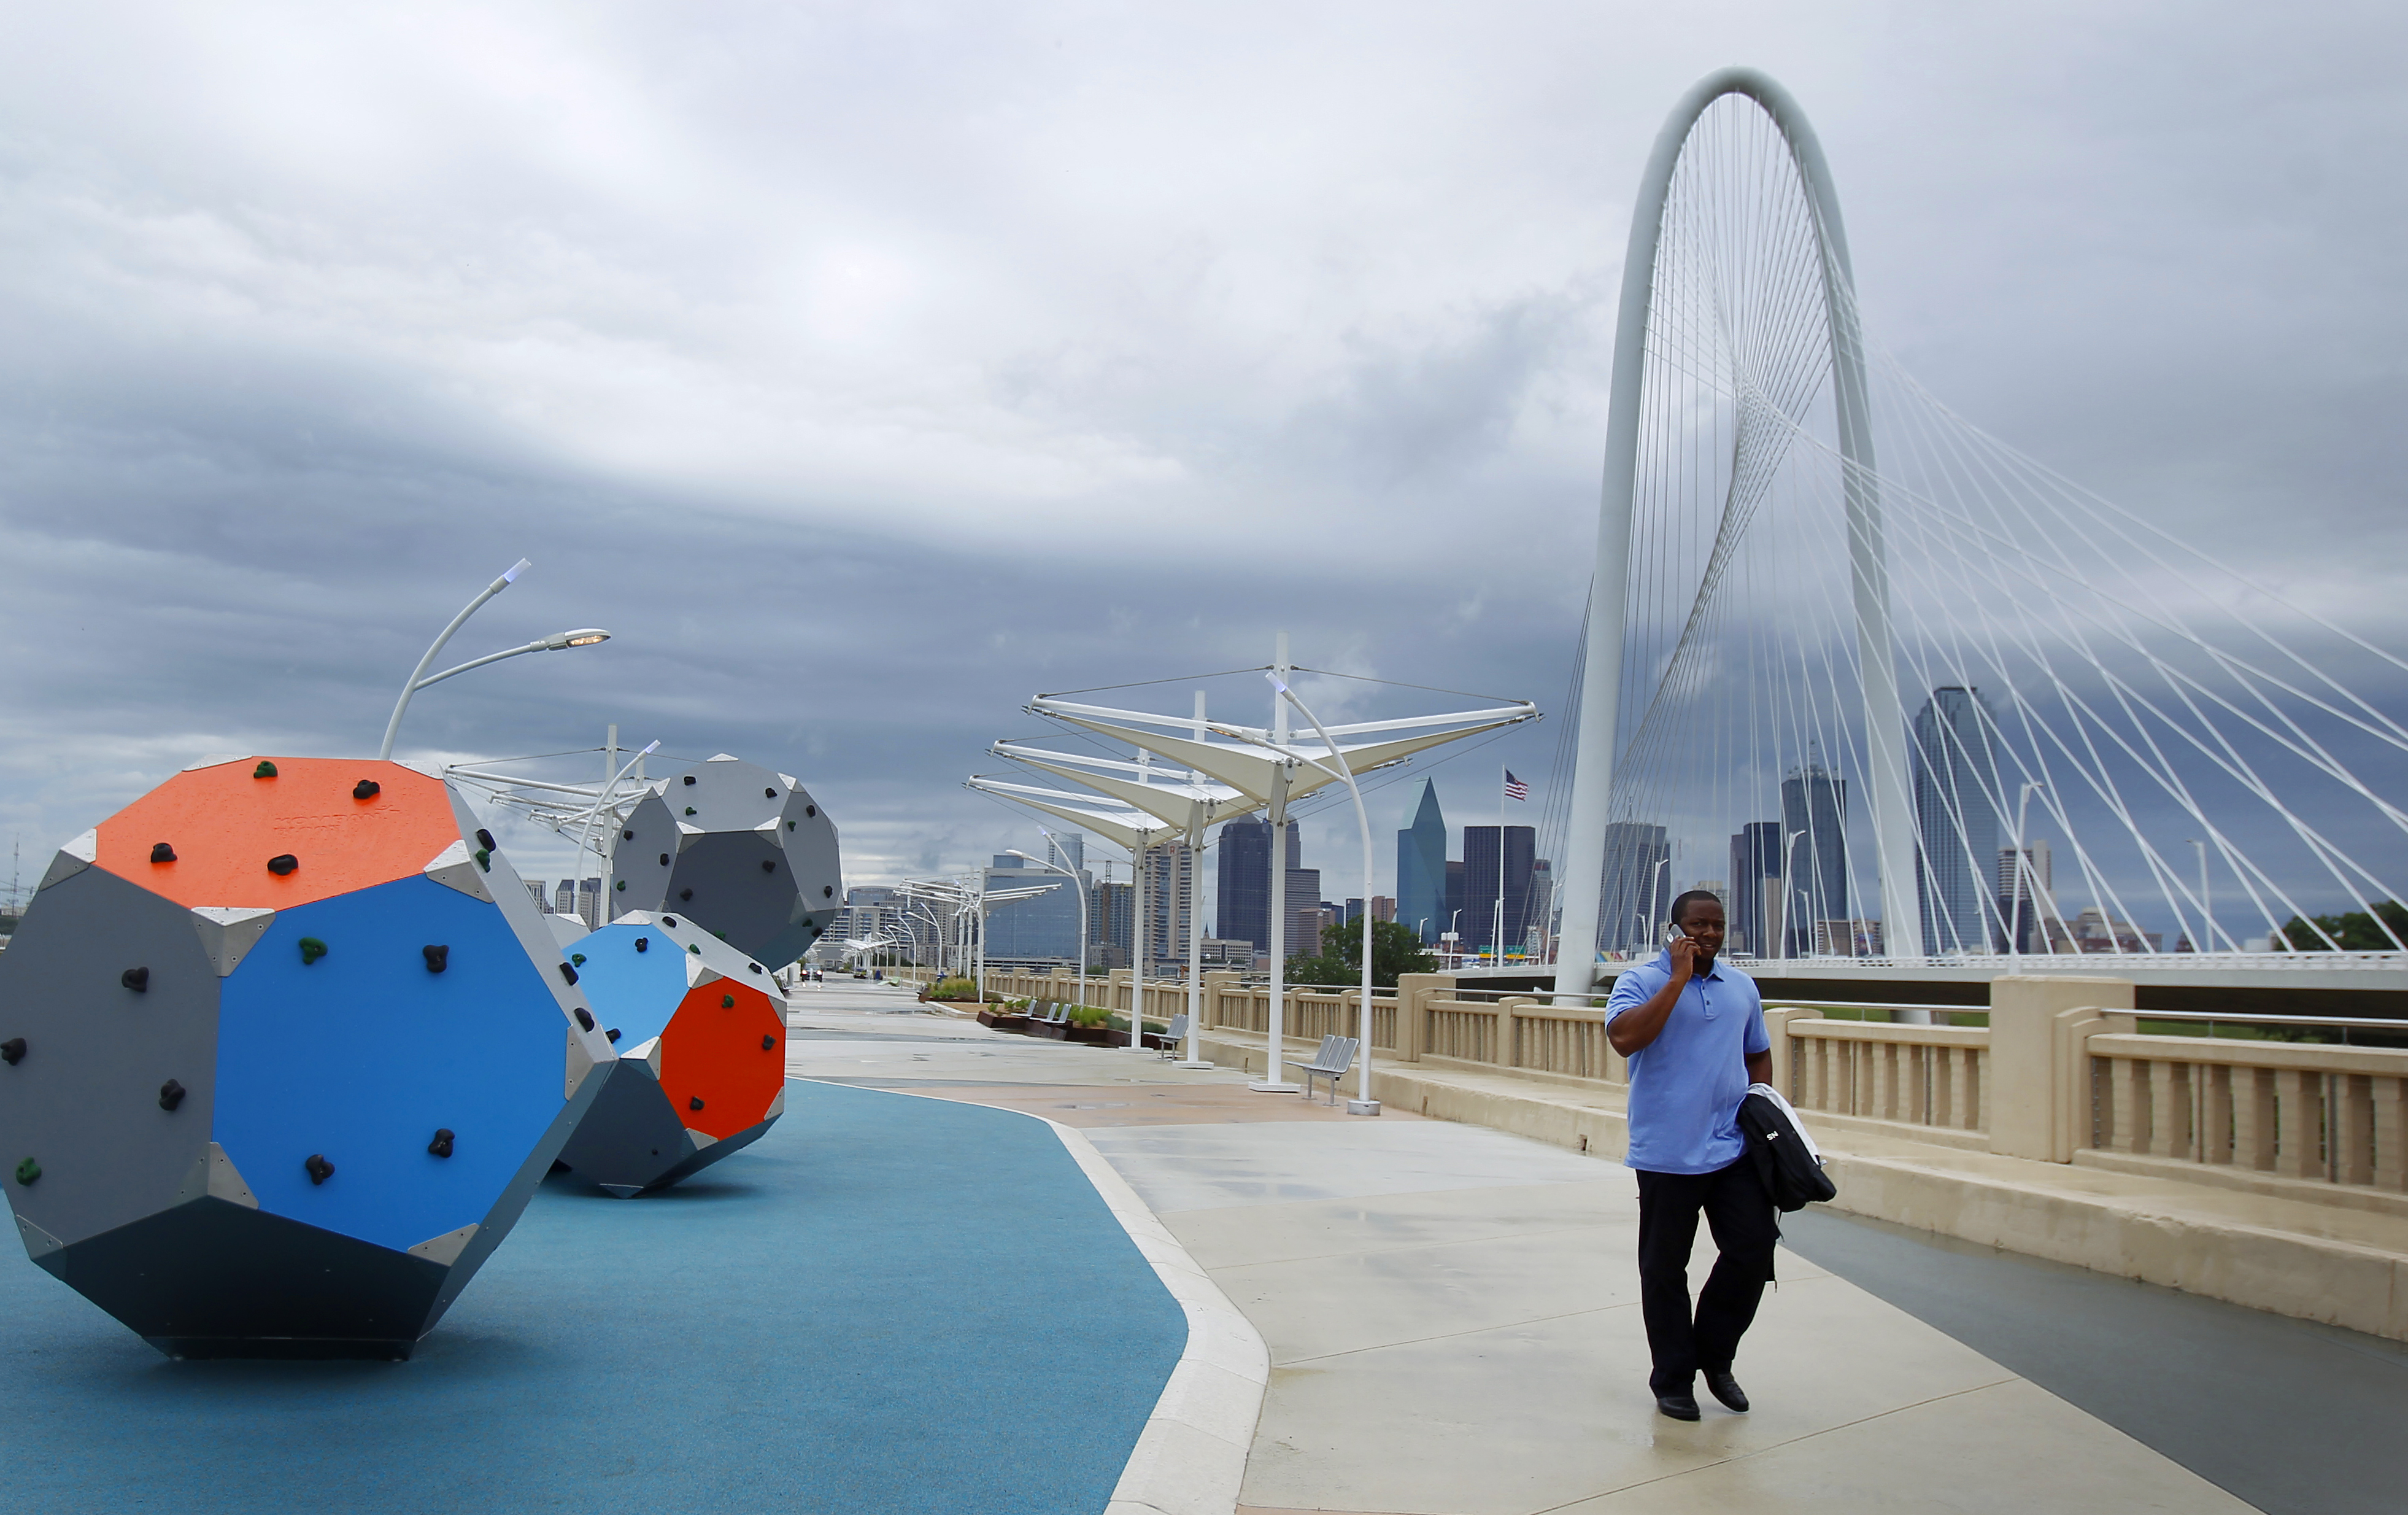 The Ronald Kirk Pedestrian Bridge is a wonderful example of a reimagined urban space.